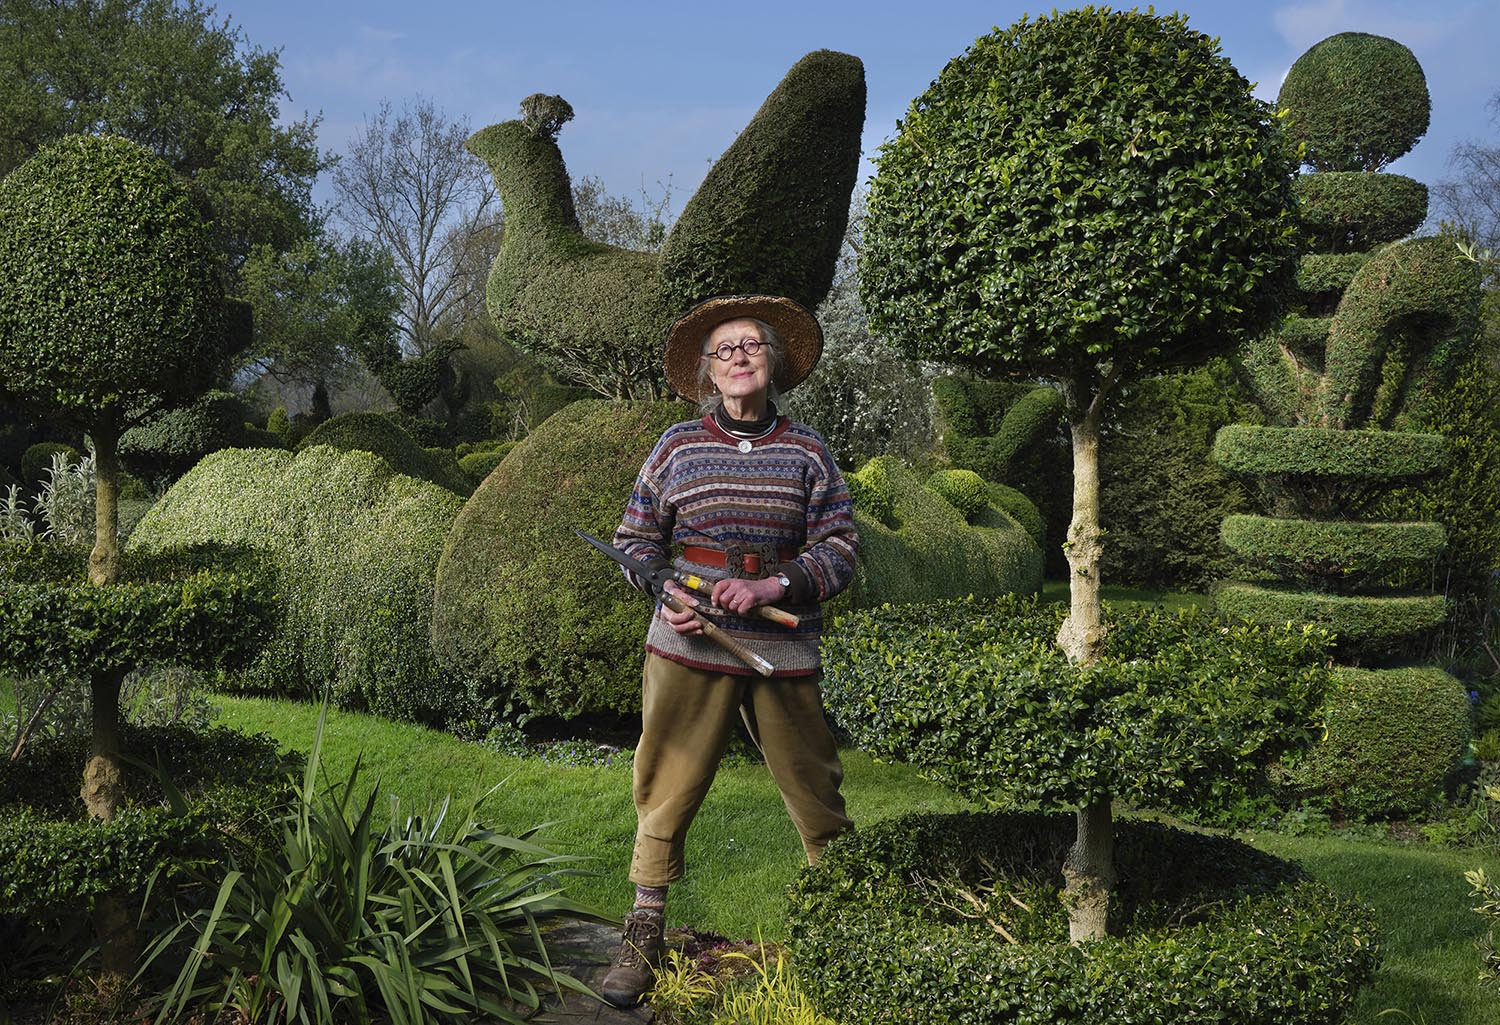 Charlotte Molesworth in her iconic topiary garden, shot with the Fujifilm GFX 50S and 32-64mm lens